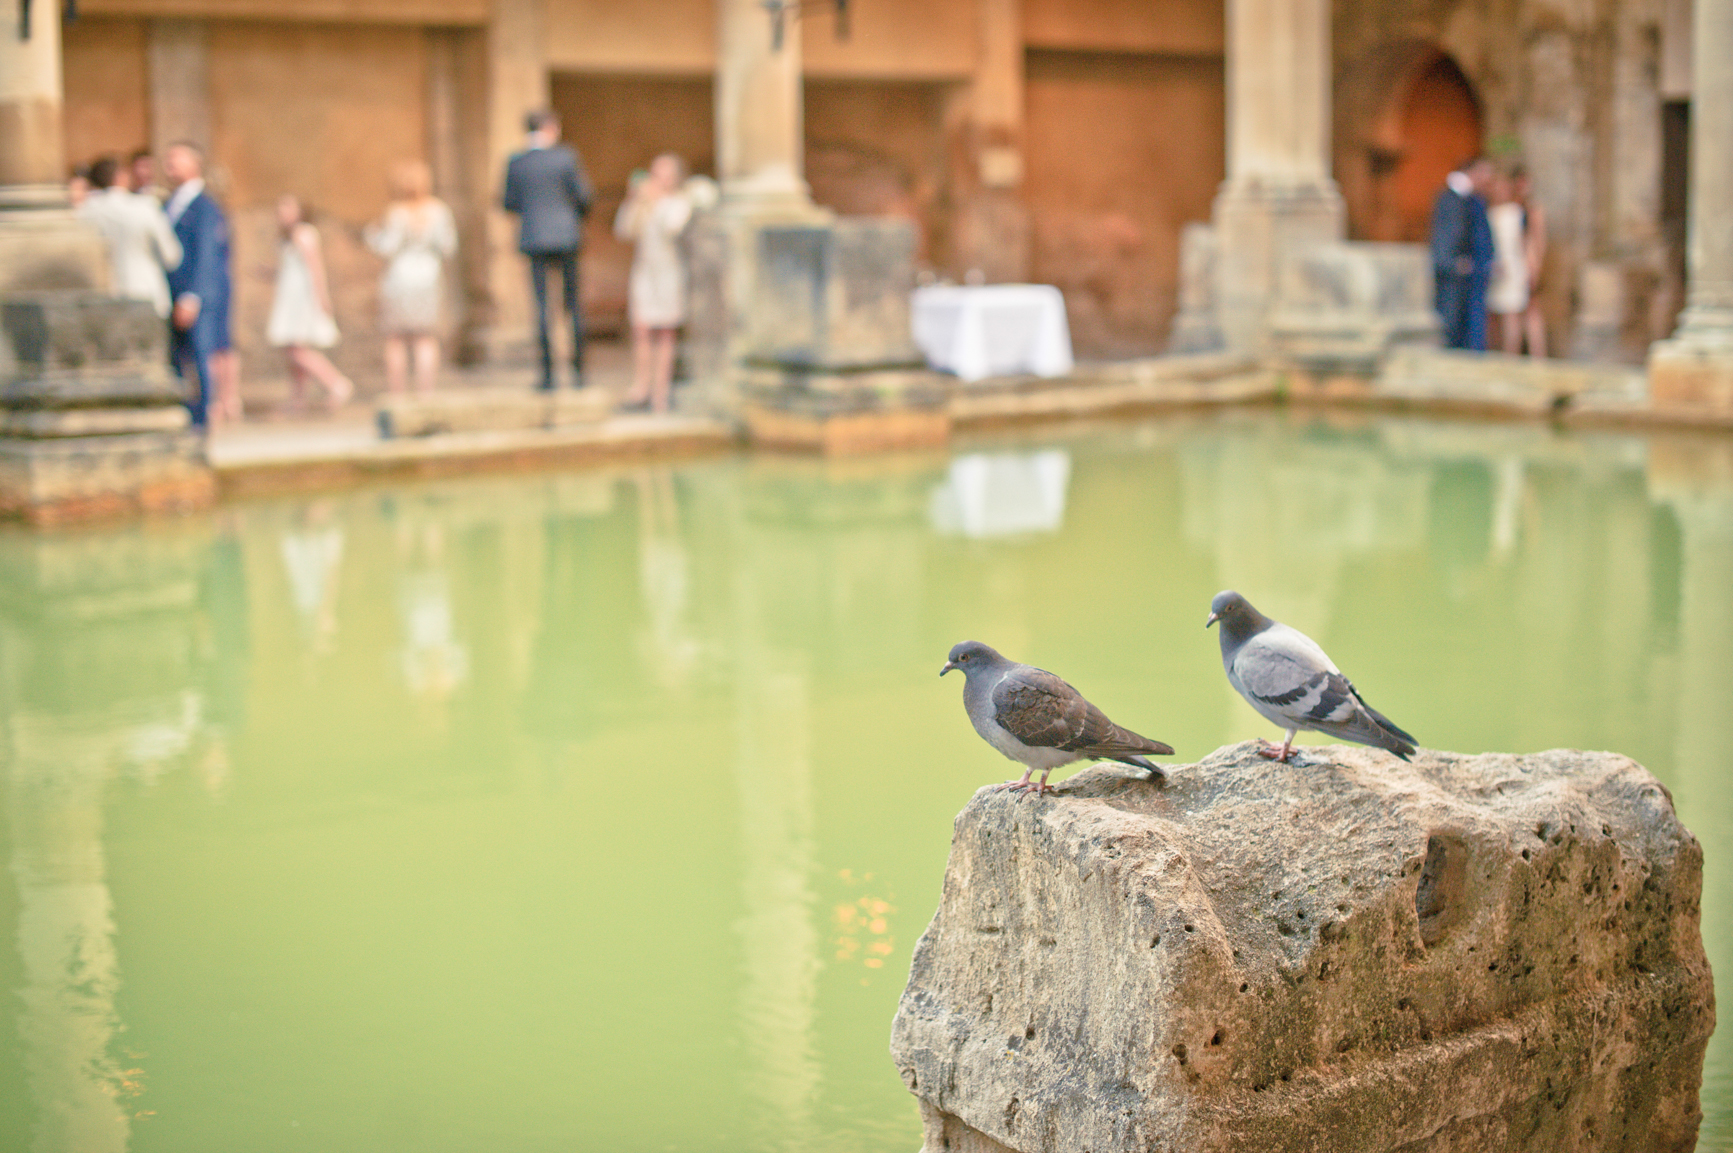 Two uninvited but welcome guests in the form of pigeons at the Roman Baths. The green water and human guests can be seen in the background,